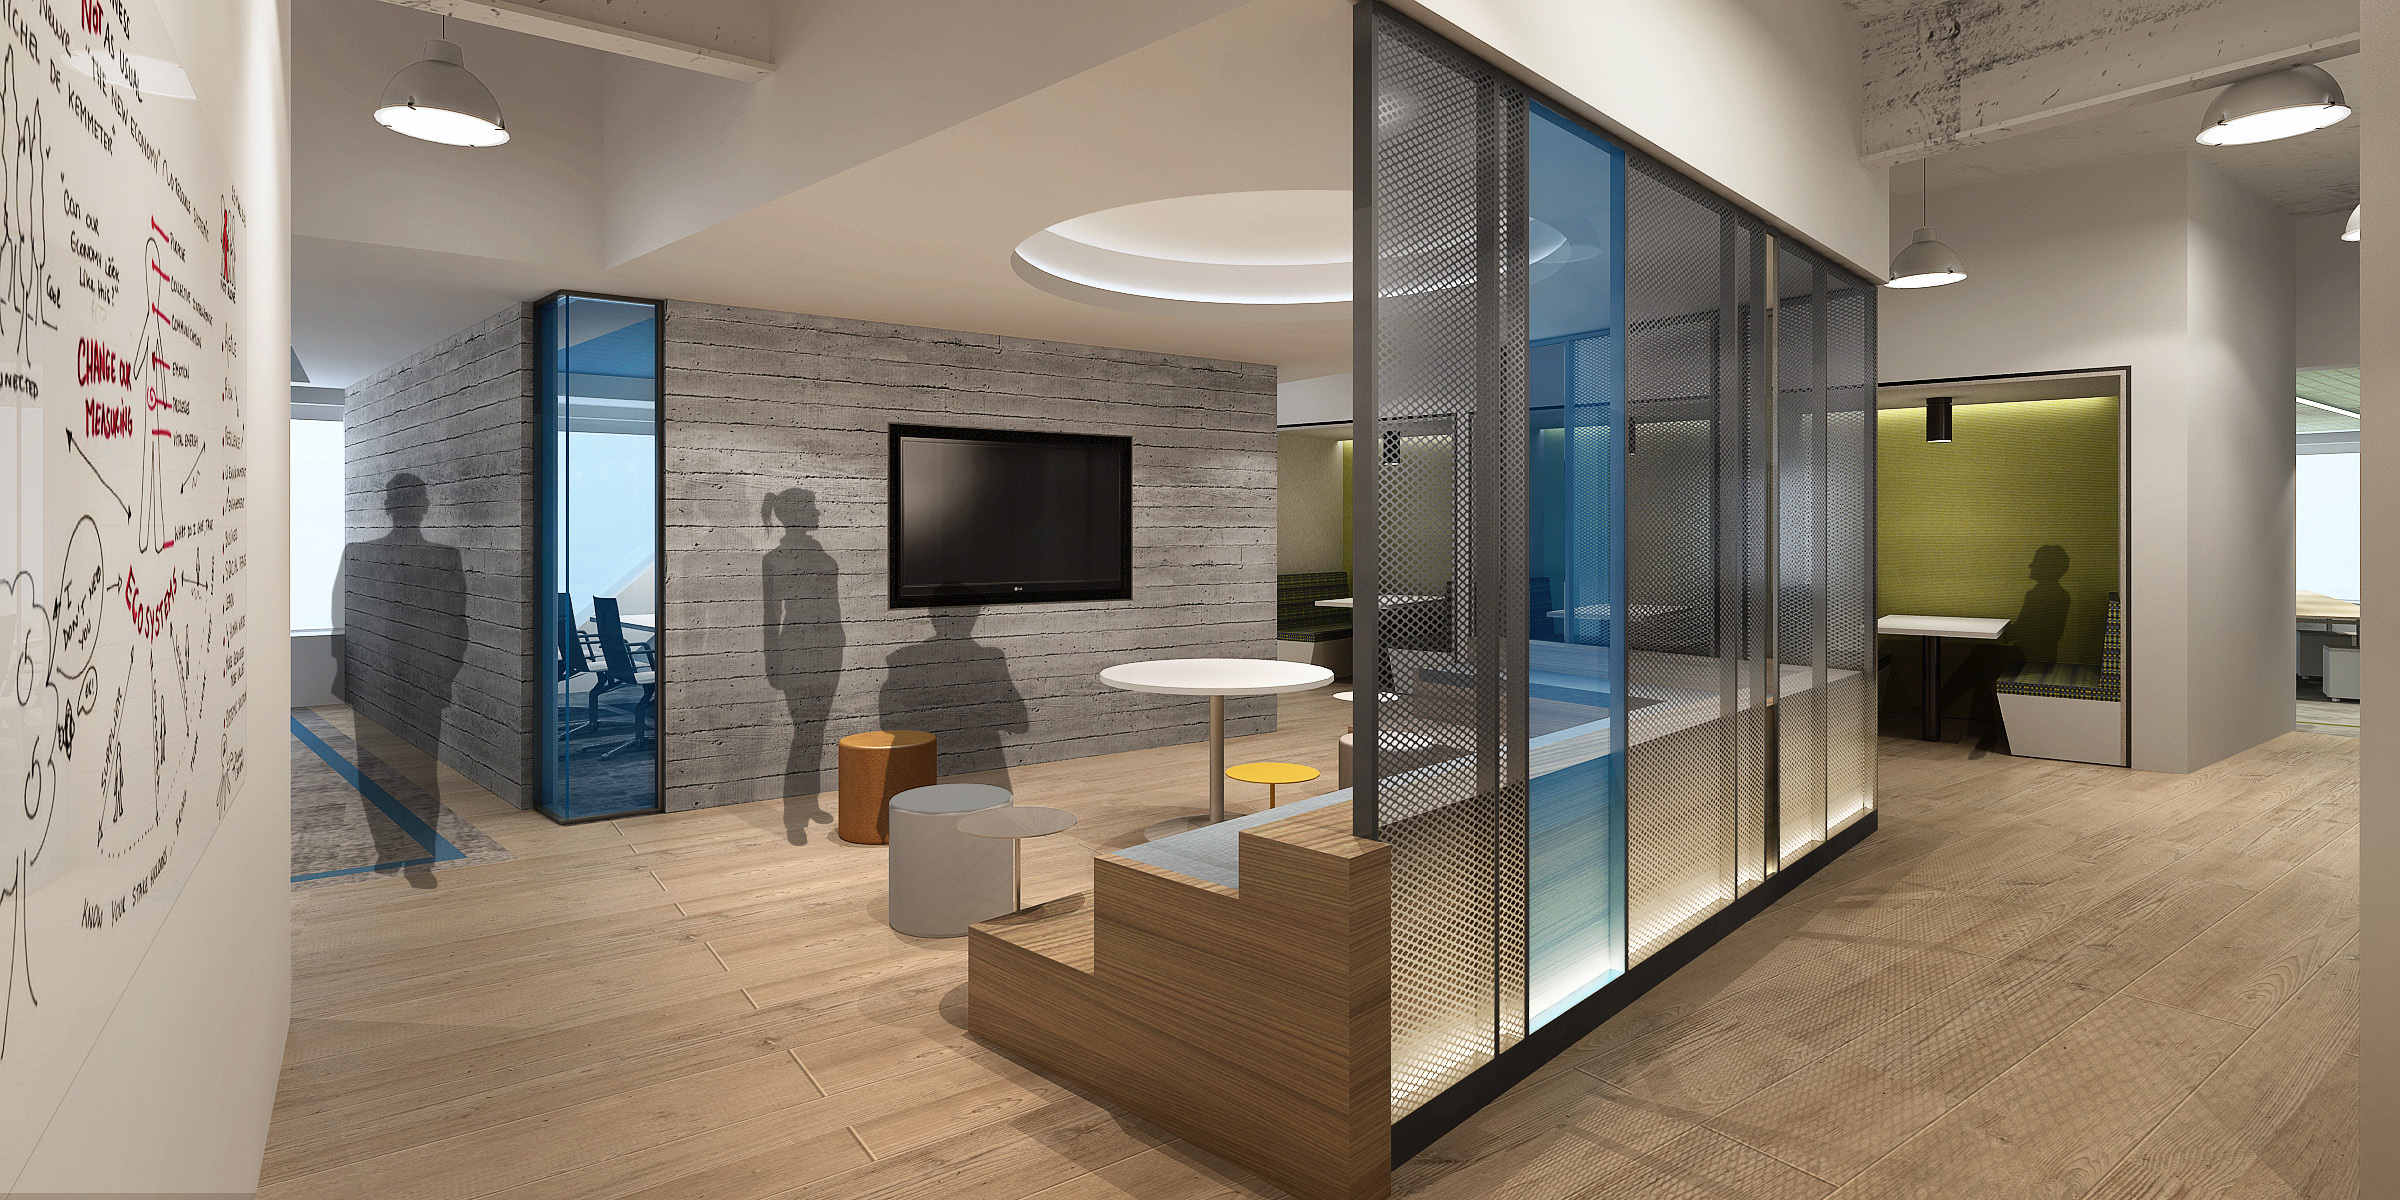 m moser architects pllc creates a new agile workplace of the future for blackstone s innovations. Black Bedroom Furniture Sets. Home Design Ideas